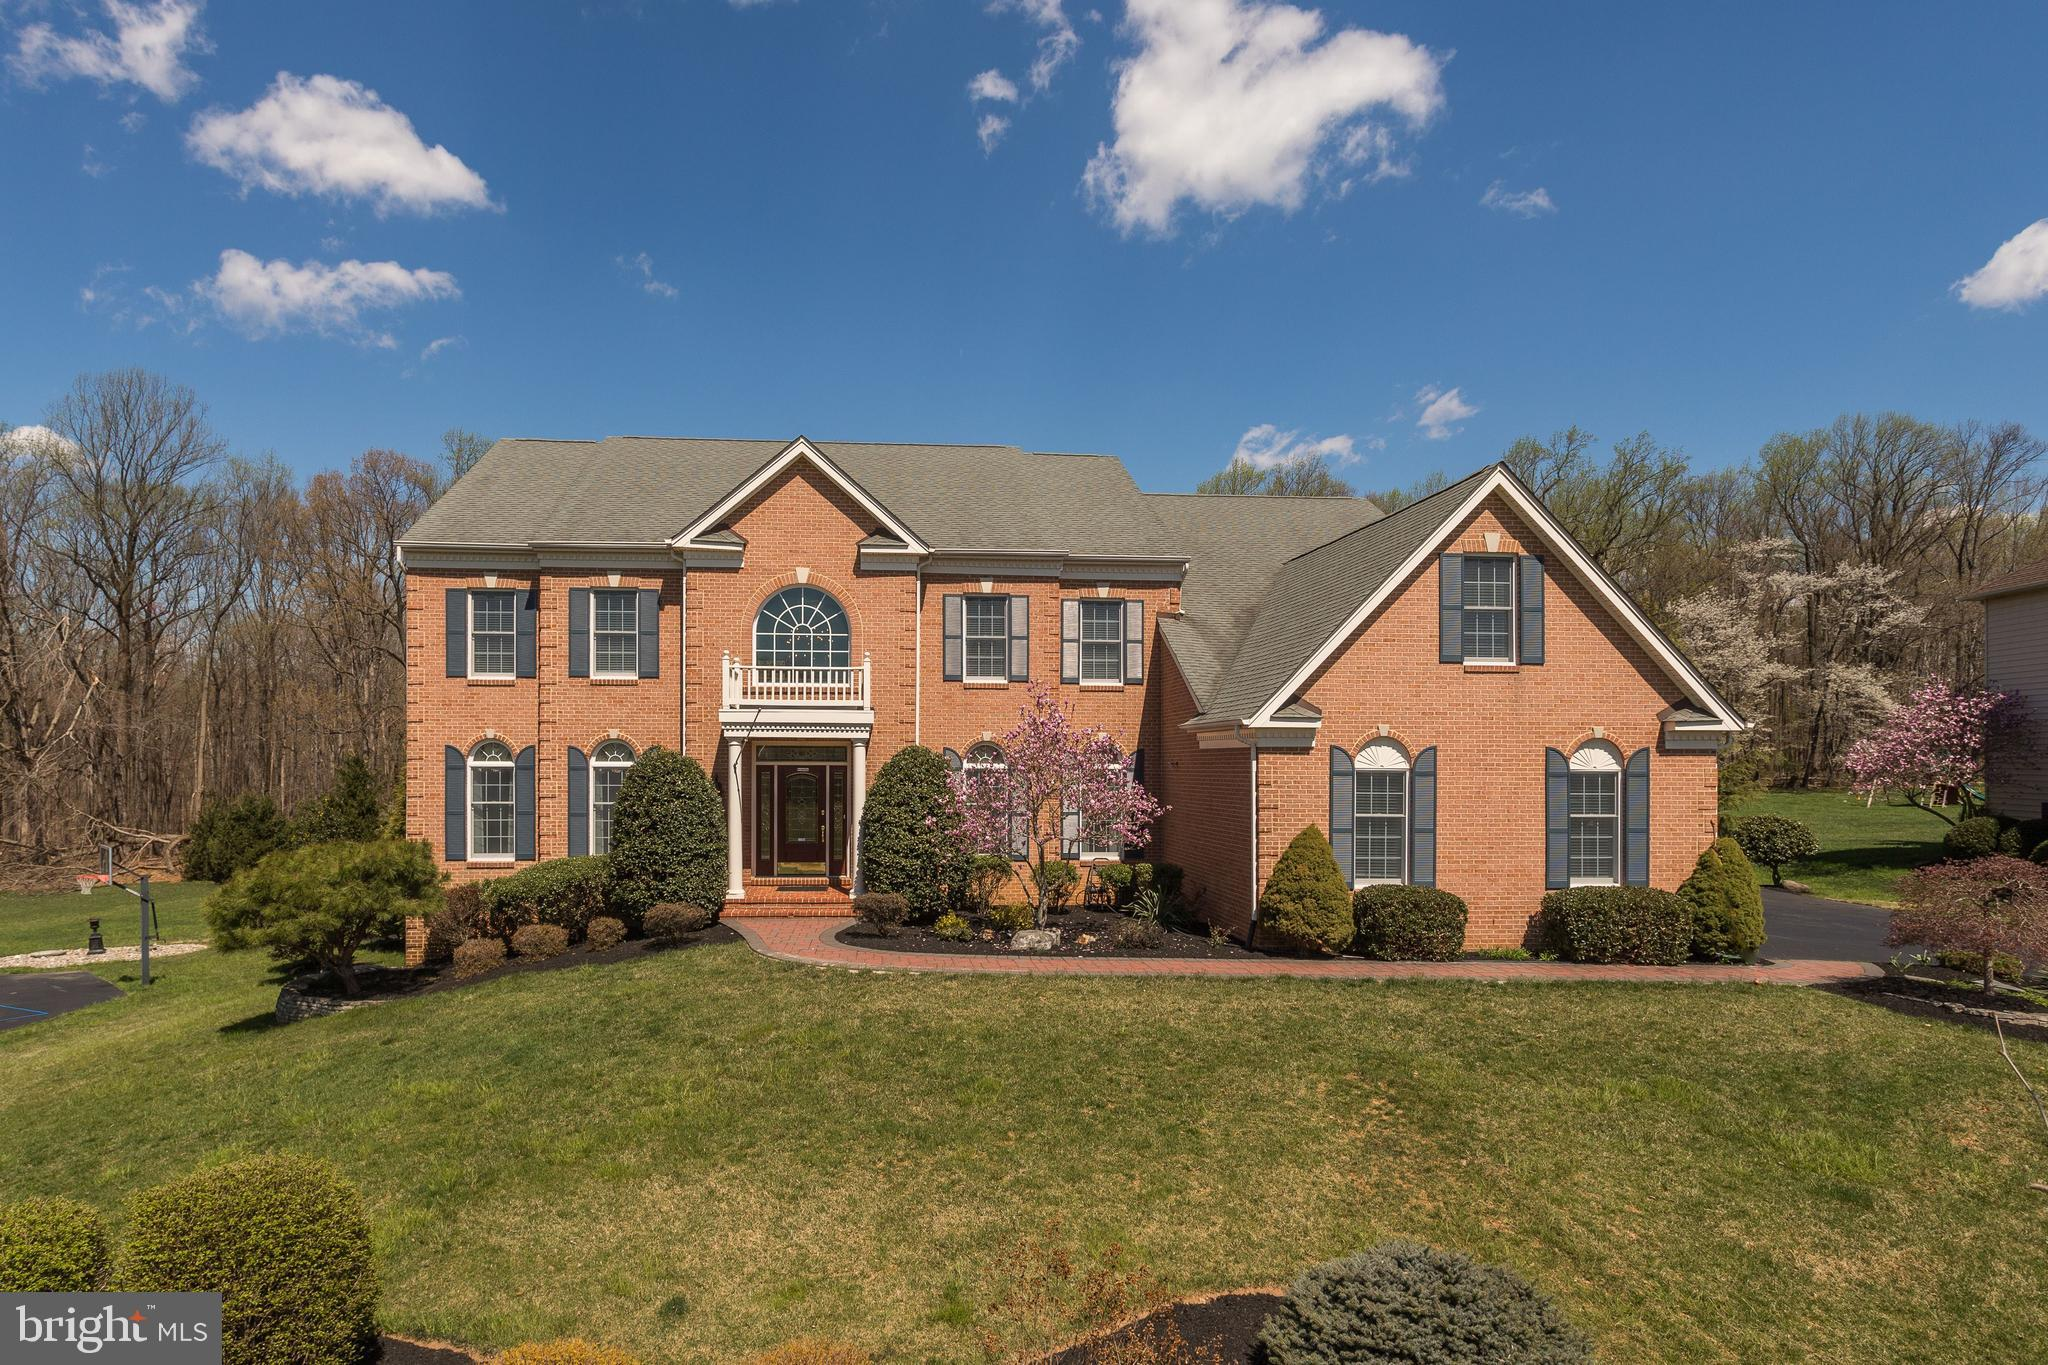 11752 PINDELL CHASE DRIVE, FULTON, MD 20759